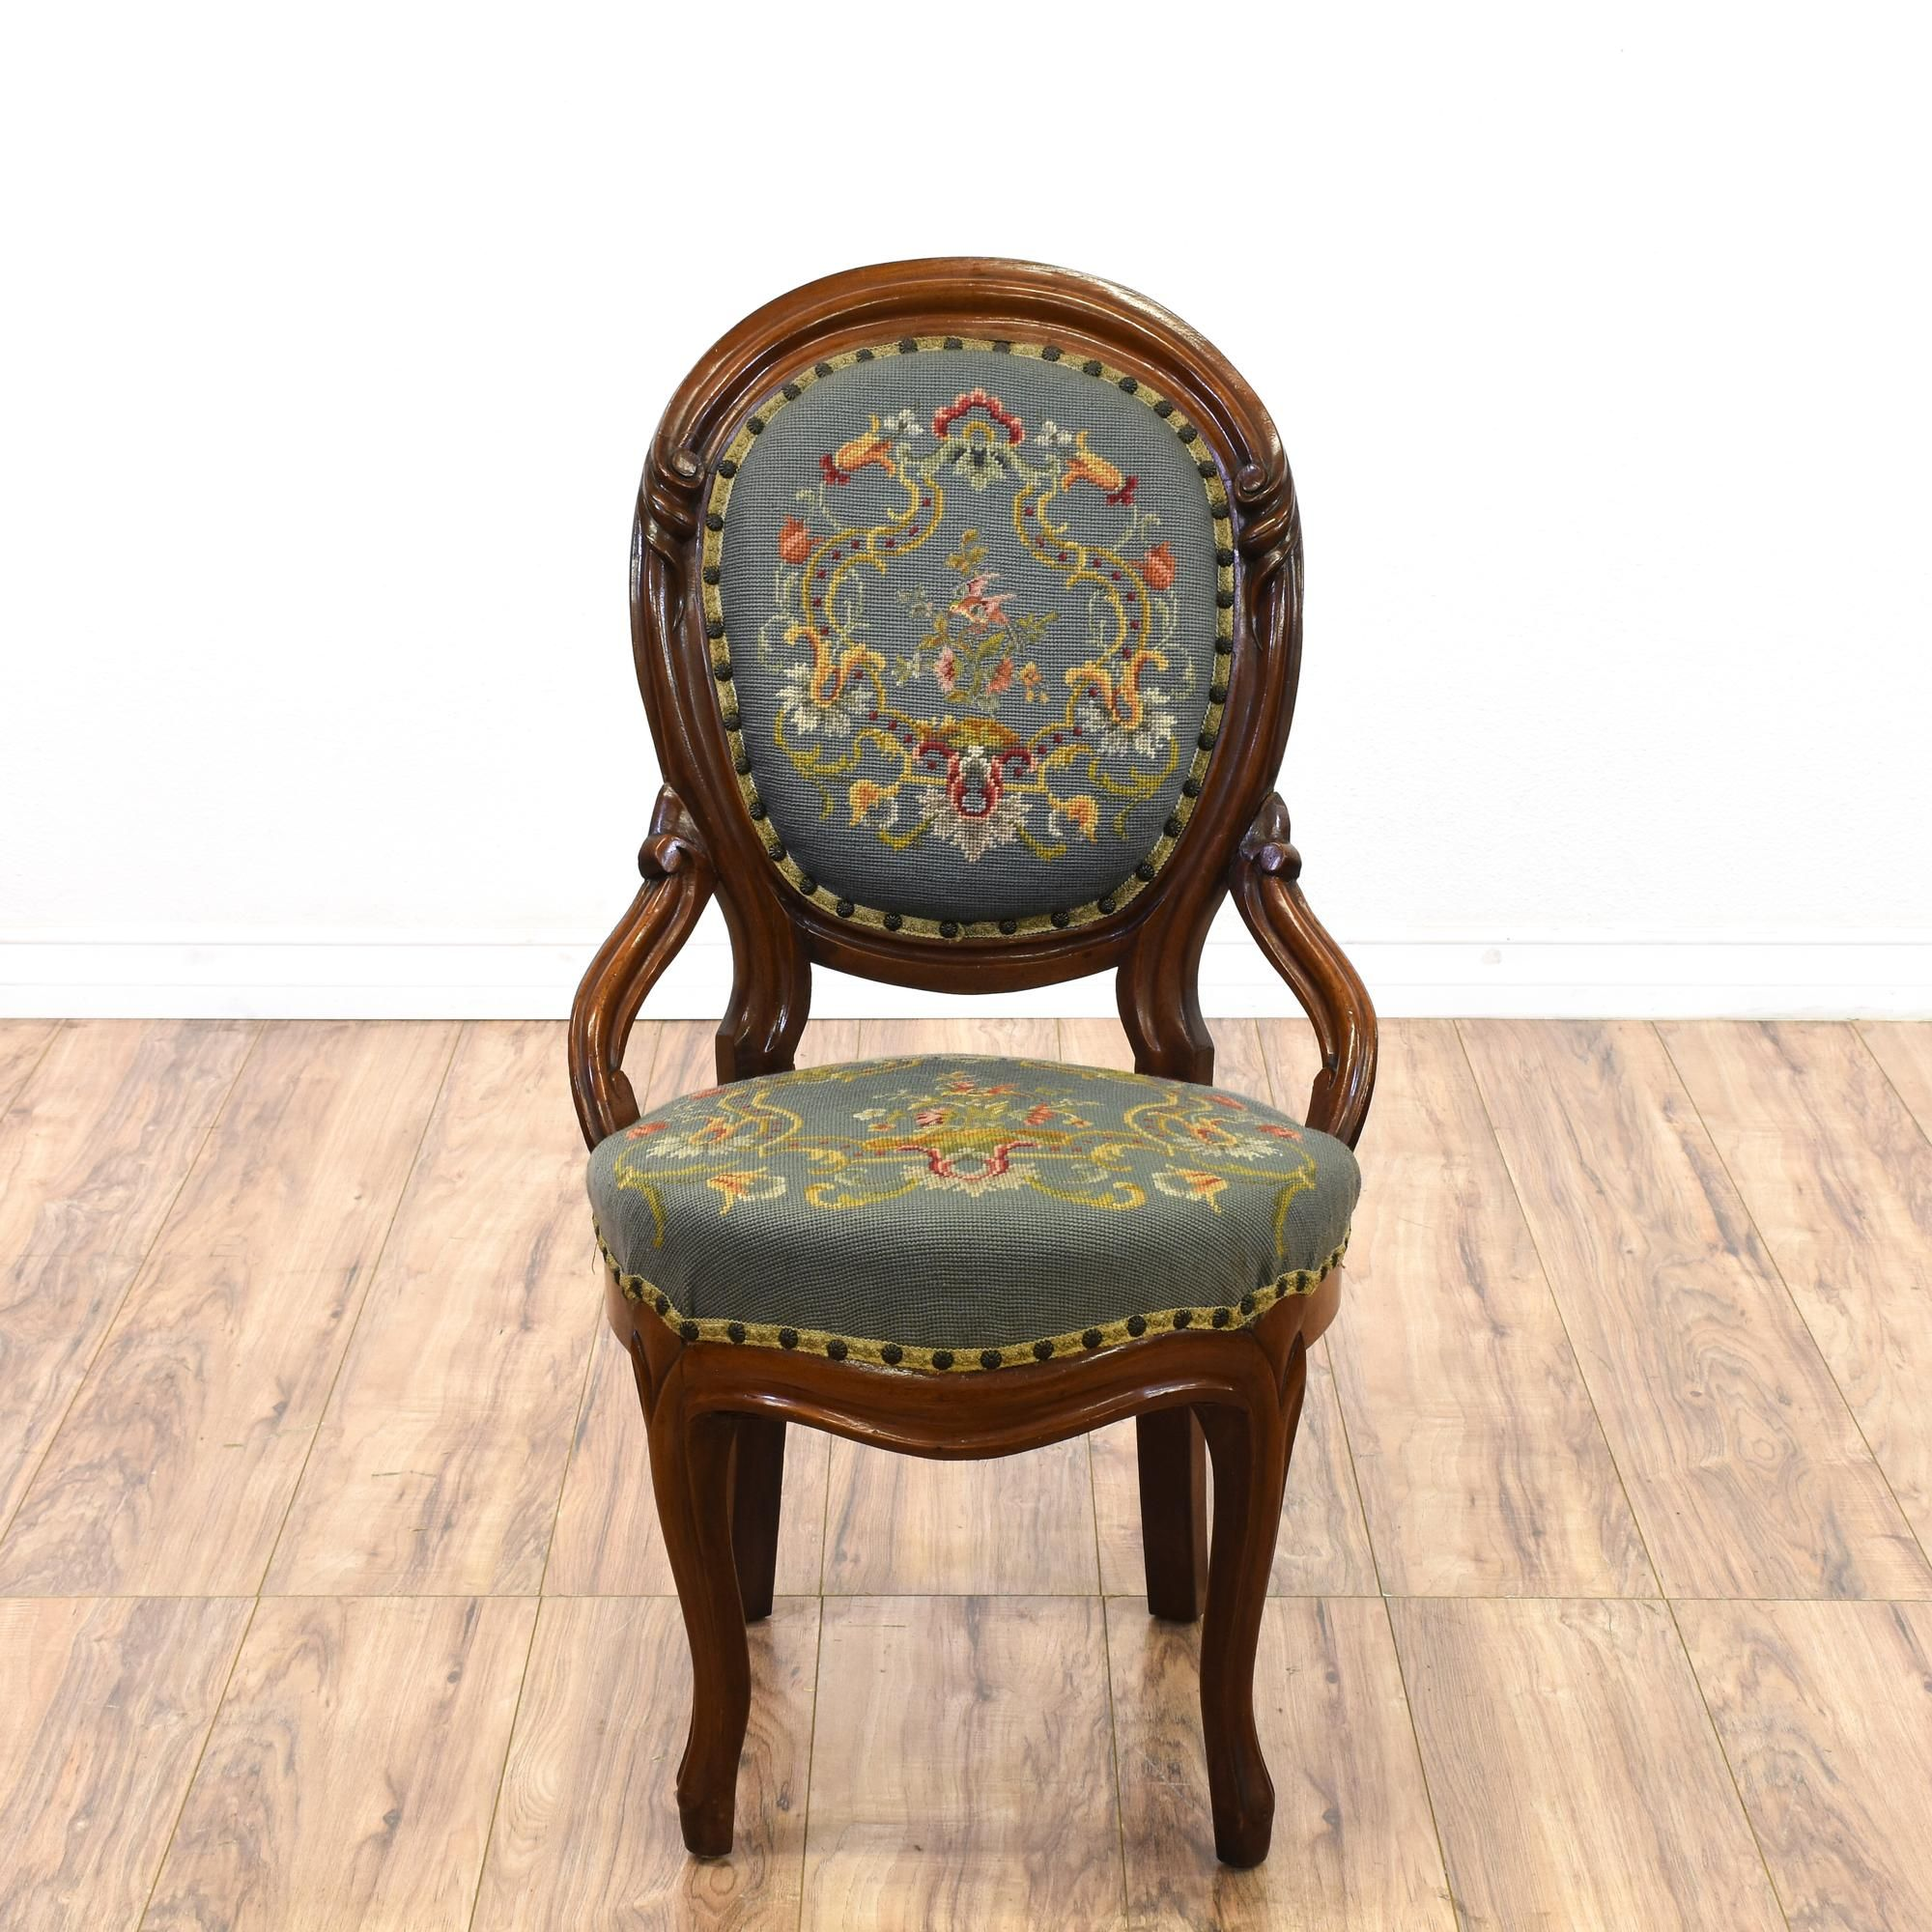 This Needlepoint Chair Is Featured In A Solid Wood With A Glossy Walnut  Finish. This Victorian Style Accent Chair Has Cadet Blue Upholstery W/  Beautiful ...